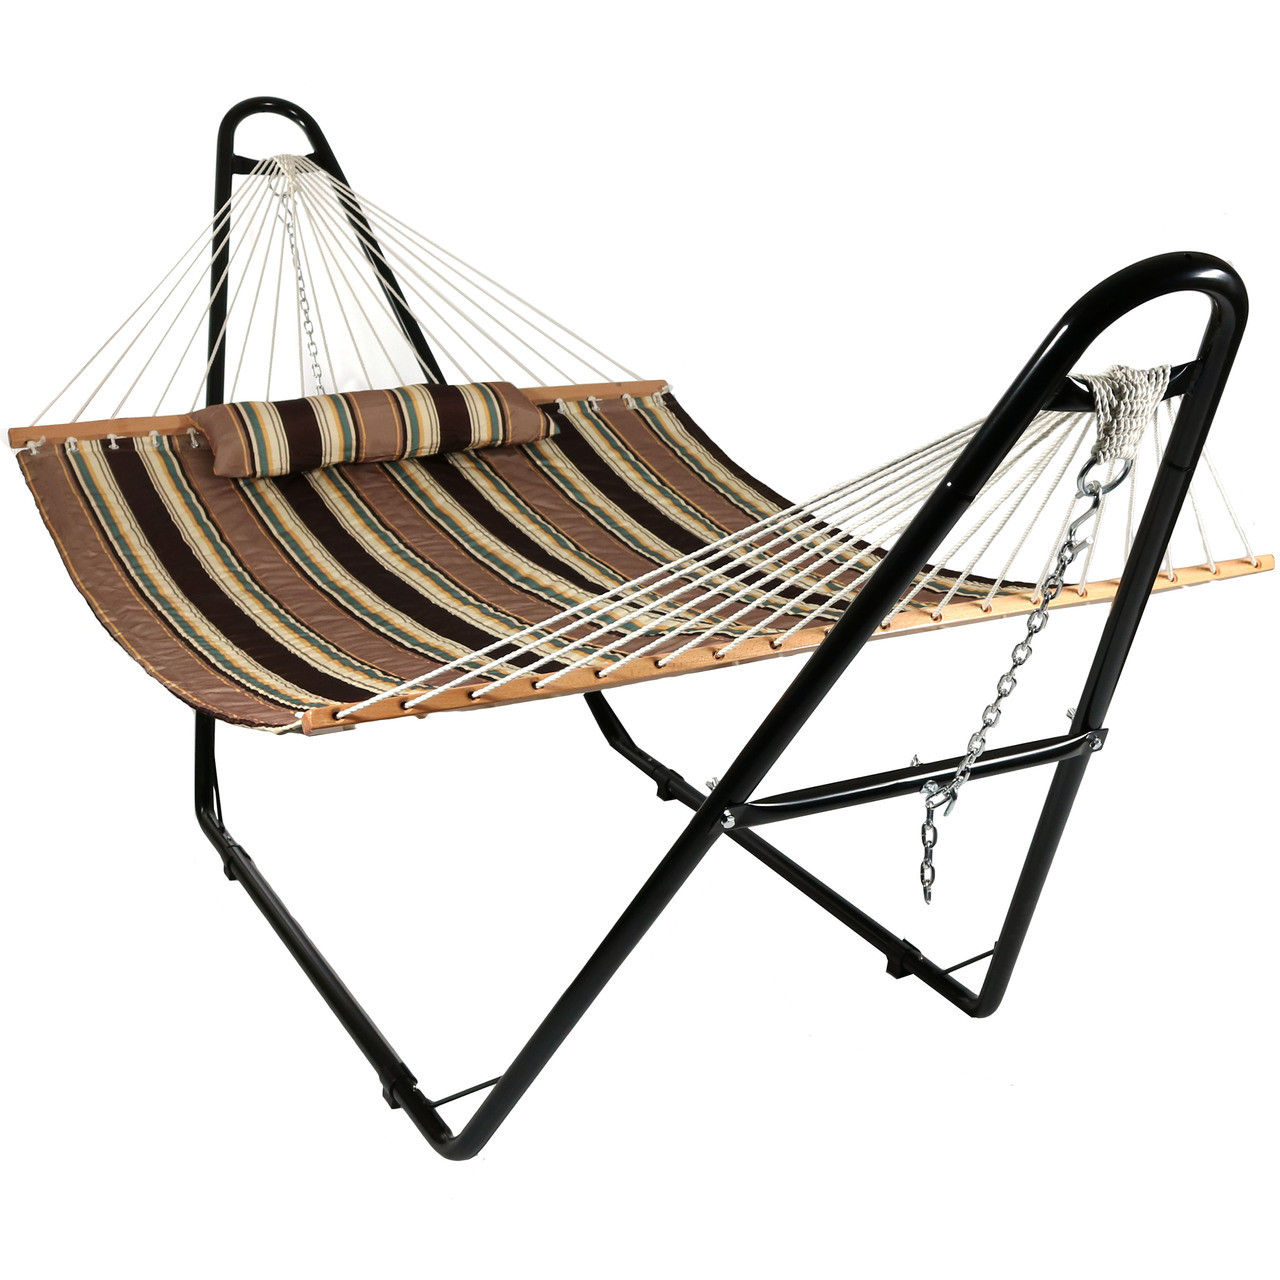 2 Person Hammock W Multi Use Universal Stand Quilted